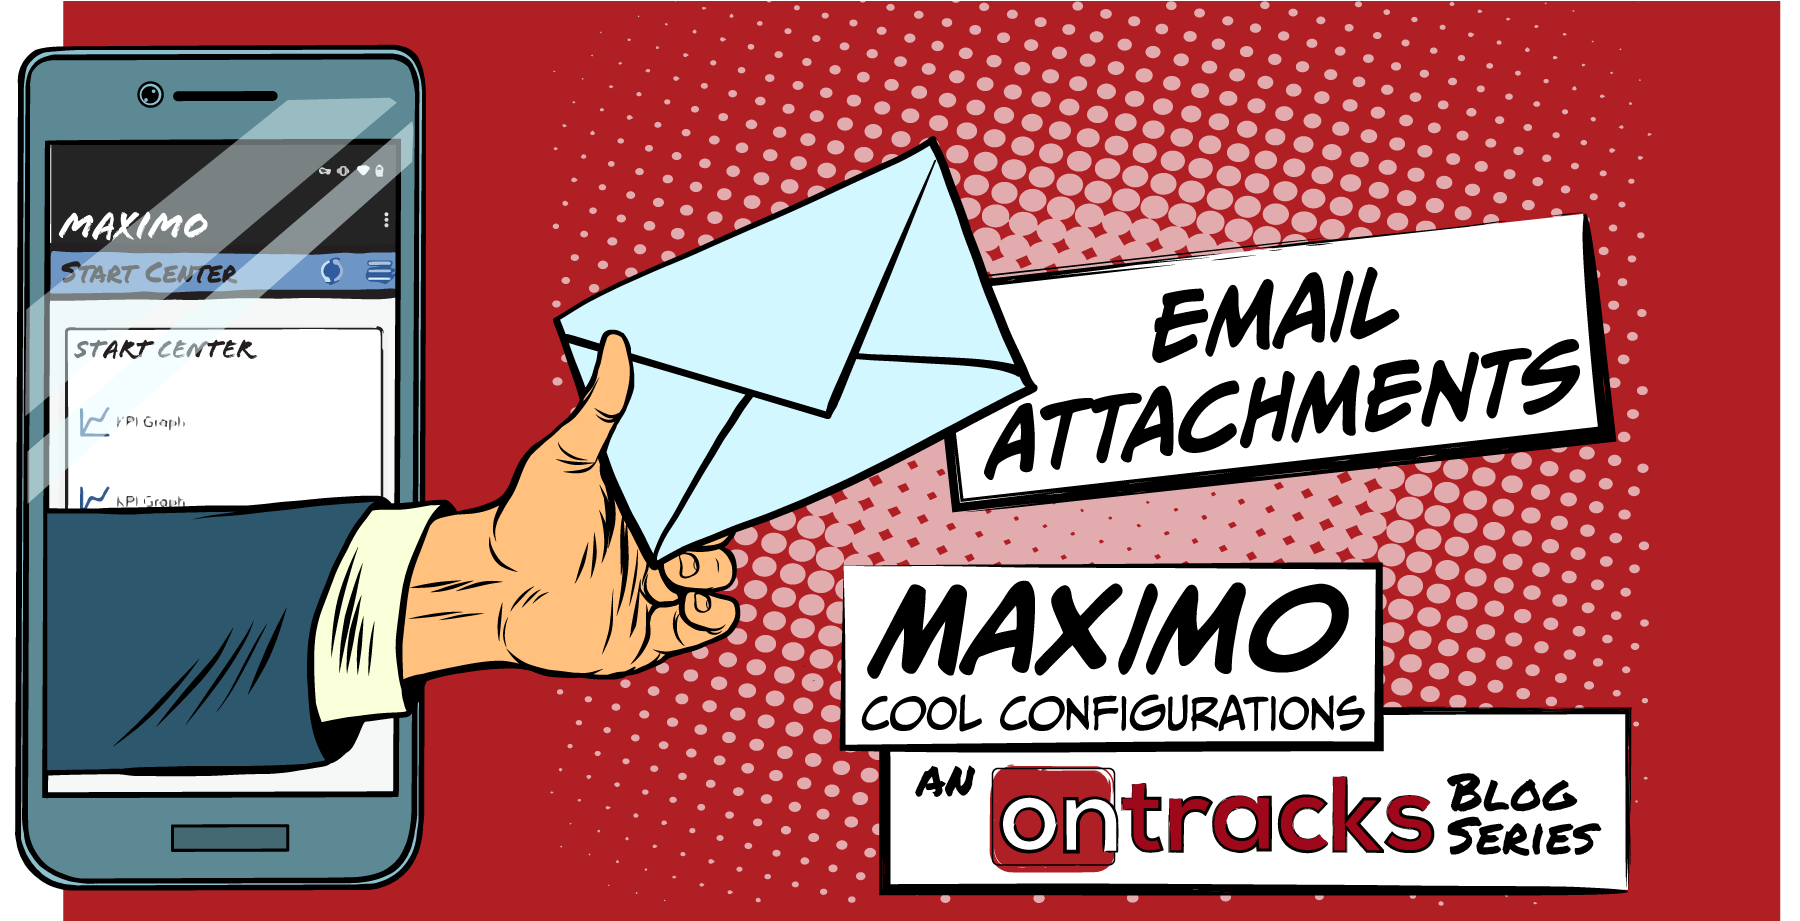 Maximo Cool Configurations Email Attachments